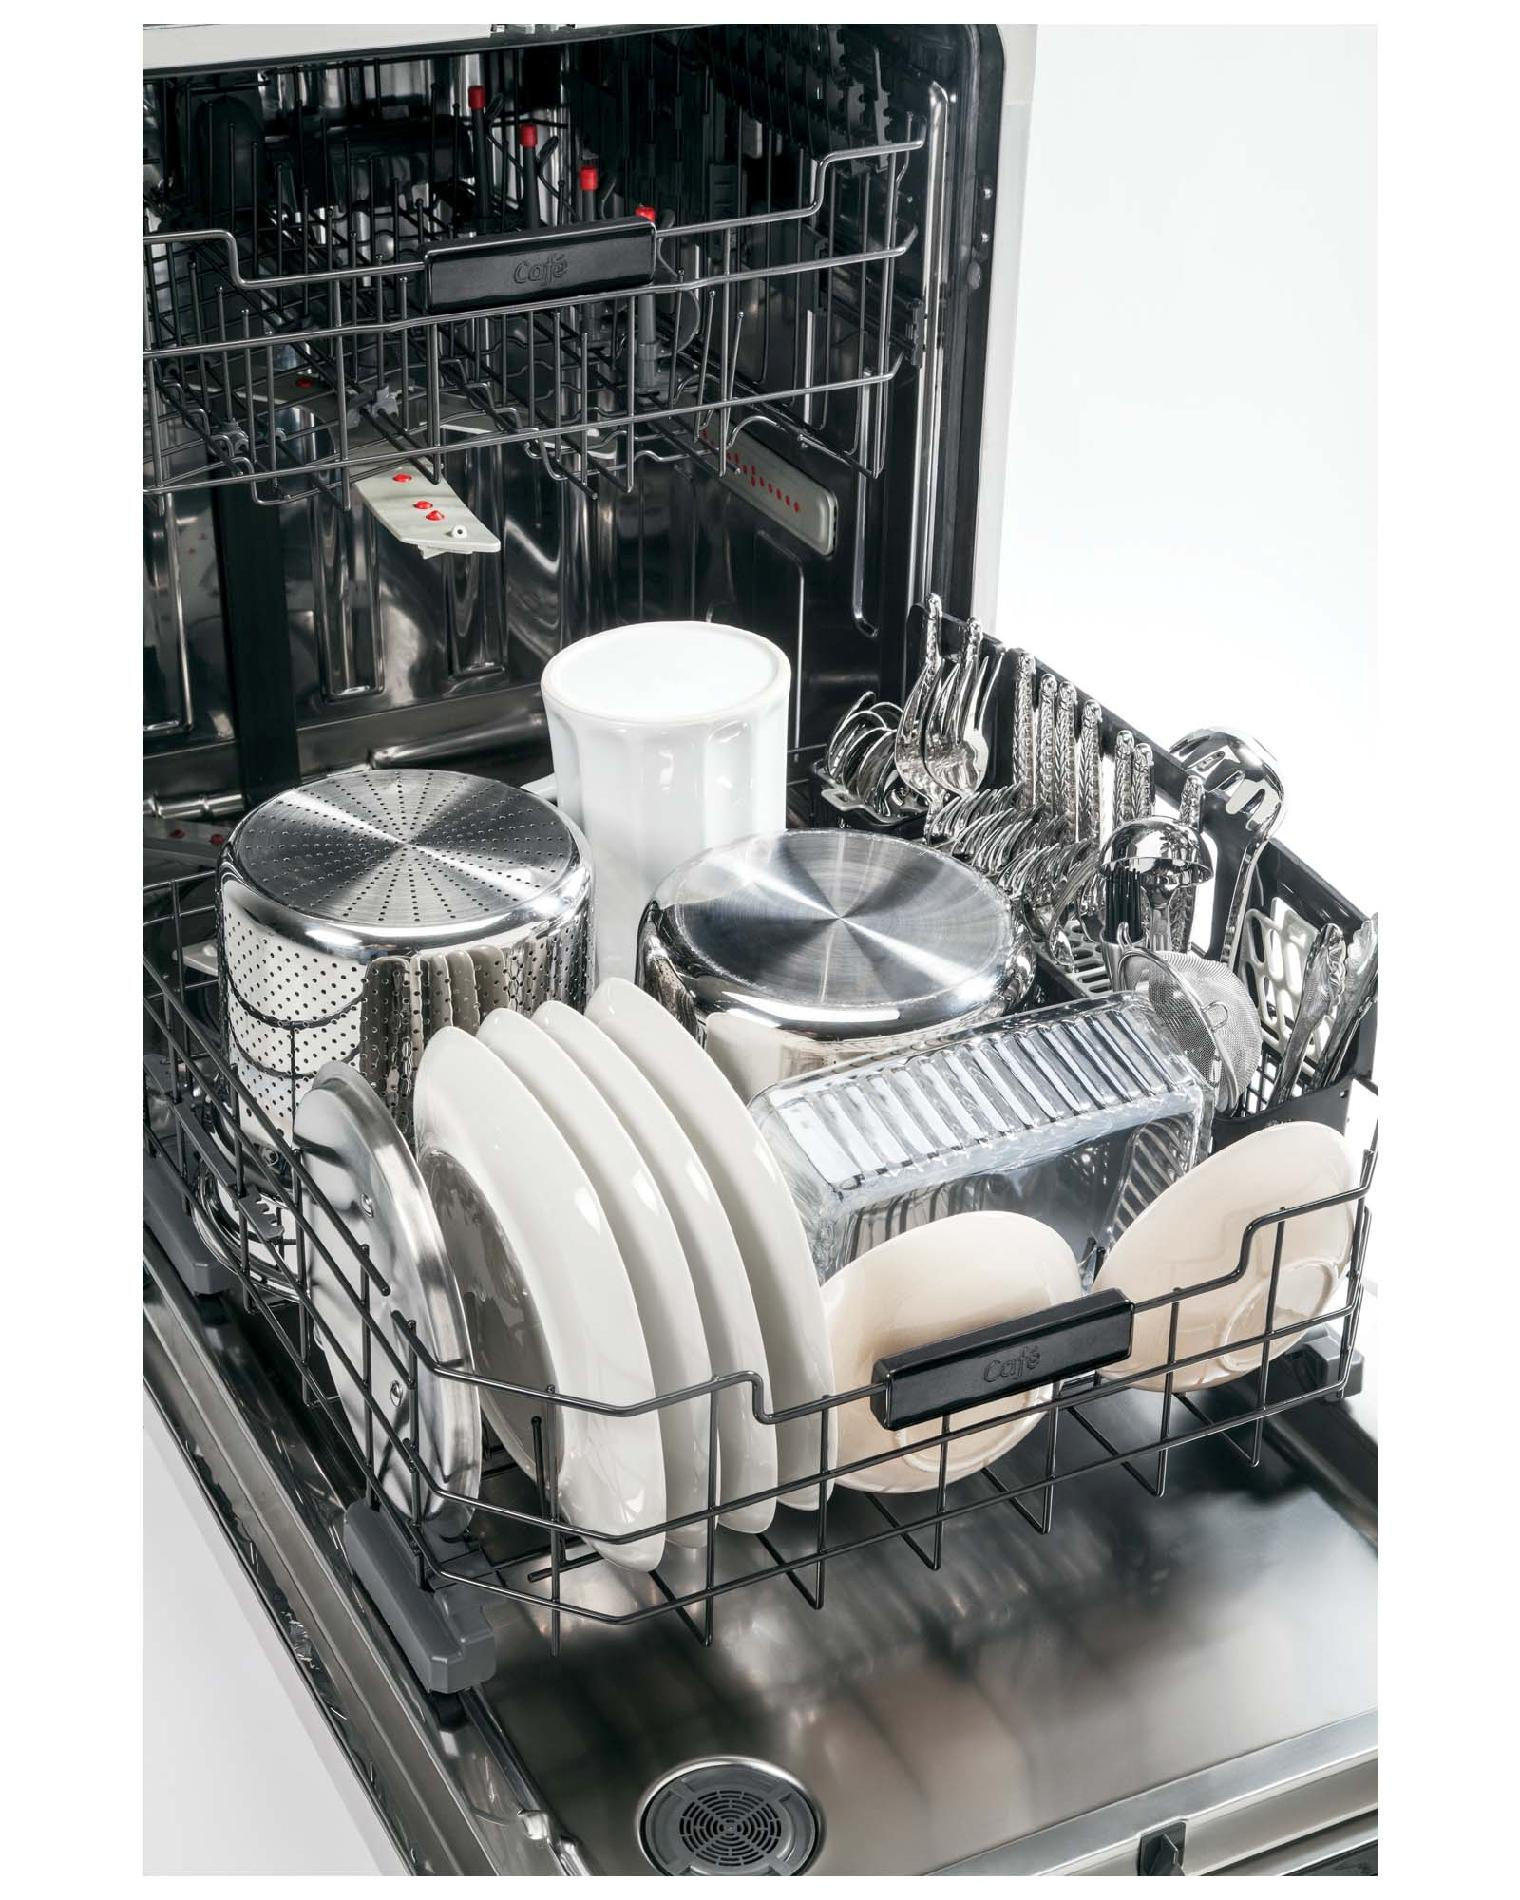 """GE Cafe™ Series 24"""" Built-in Dishwasher w/ Stainless Steel Interior - Stainless Steel"""